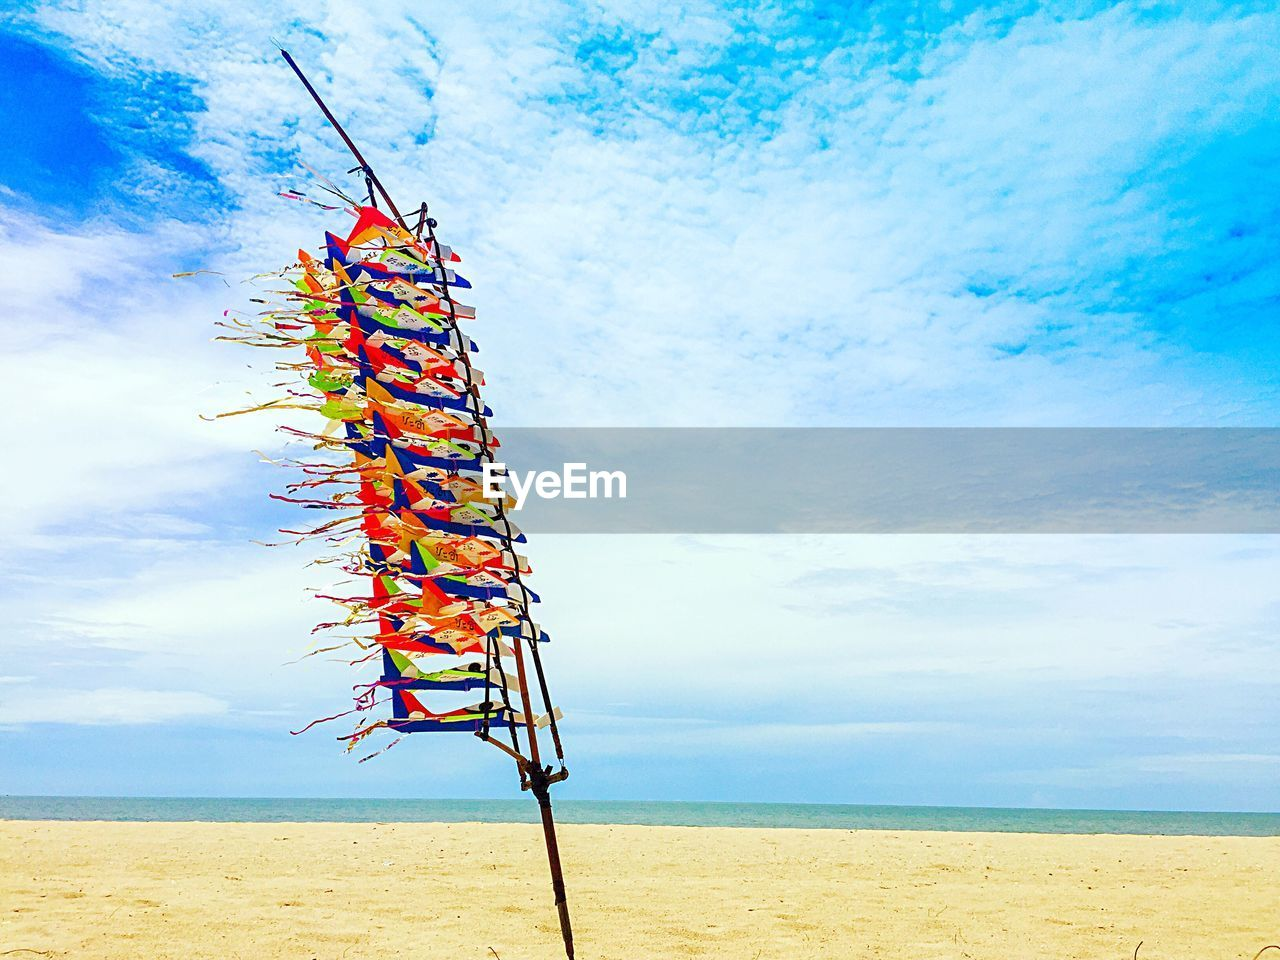 LOW ANGLE VIEW OF BEACH AGAINST BLUE SKY